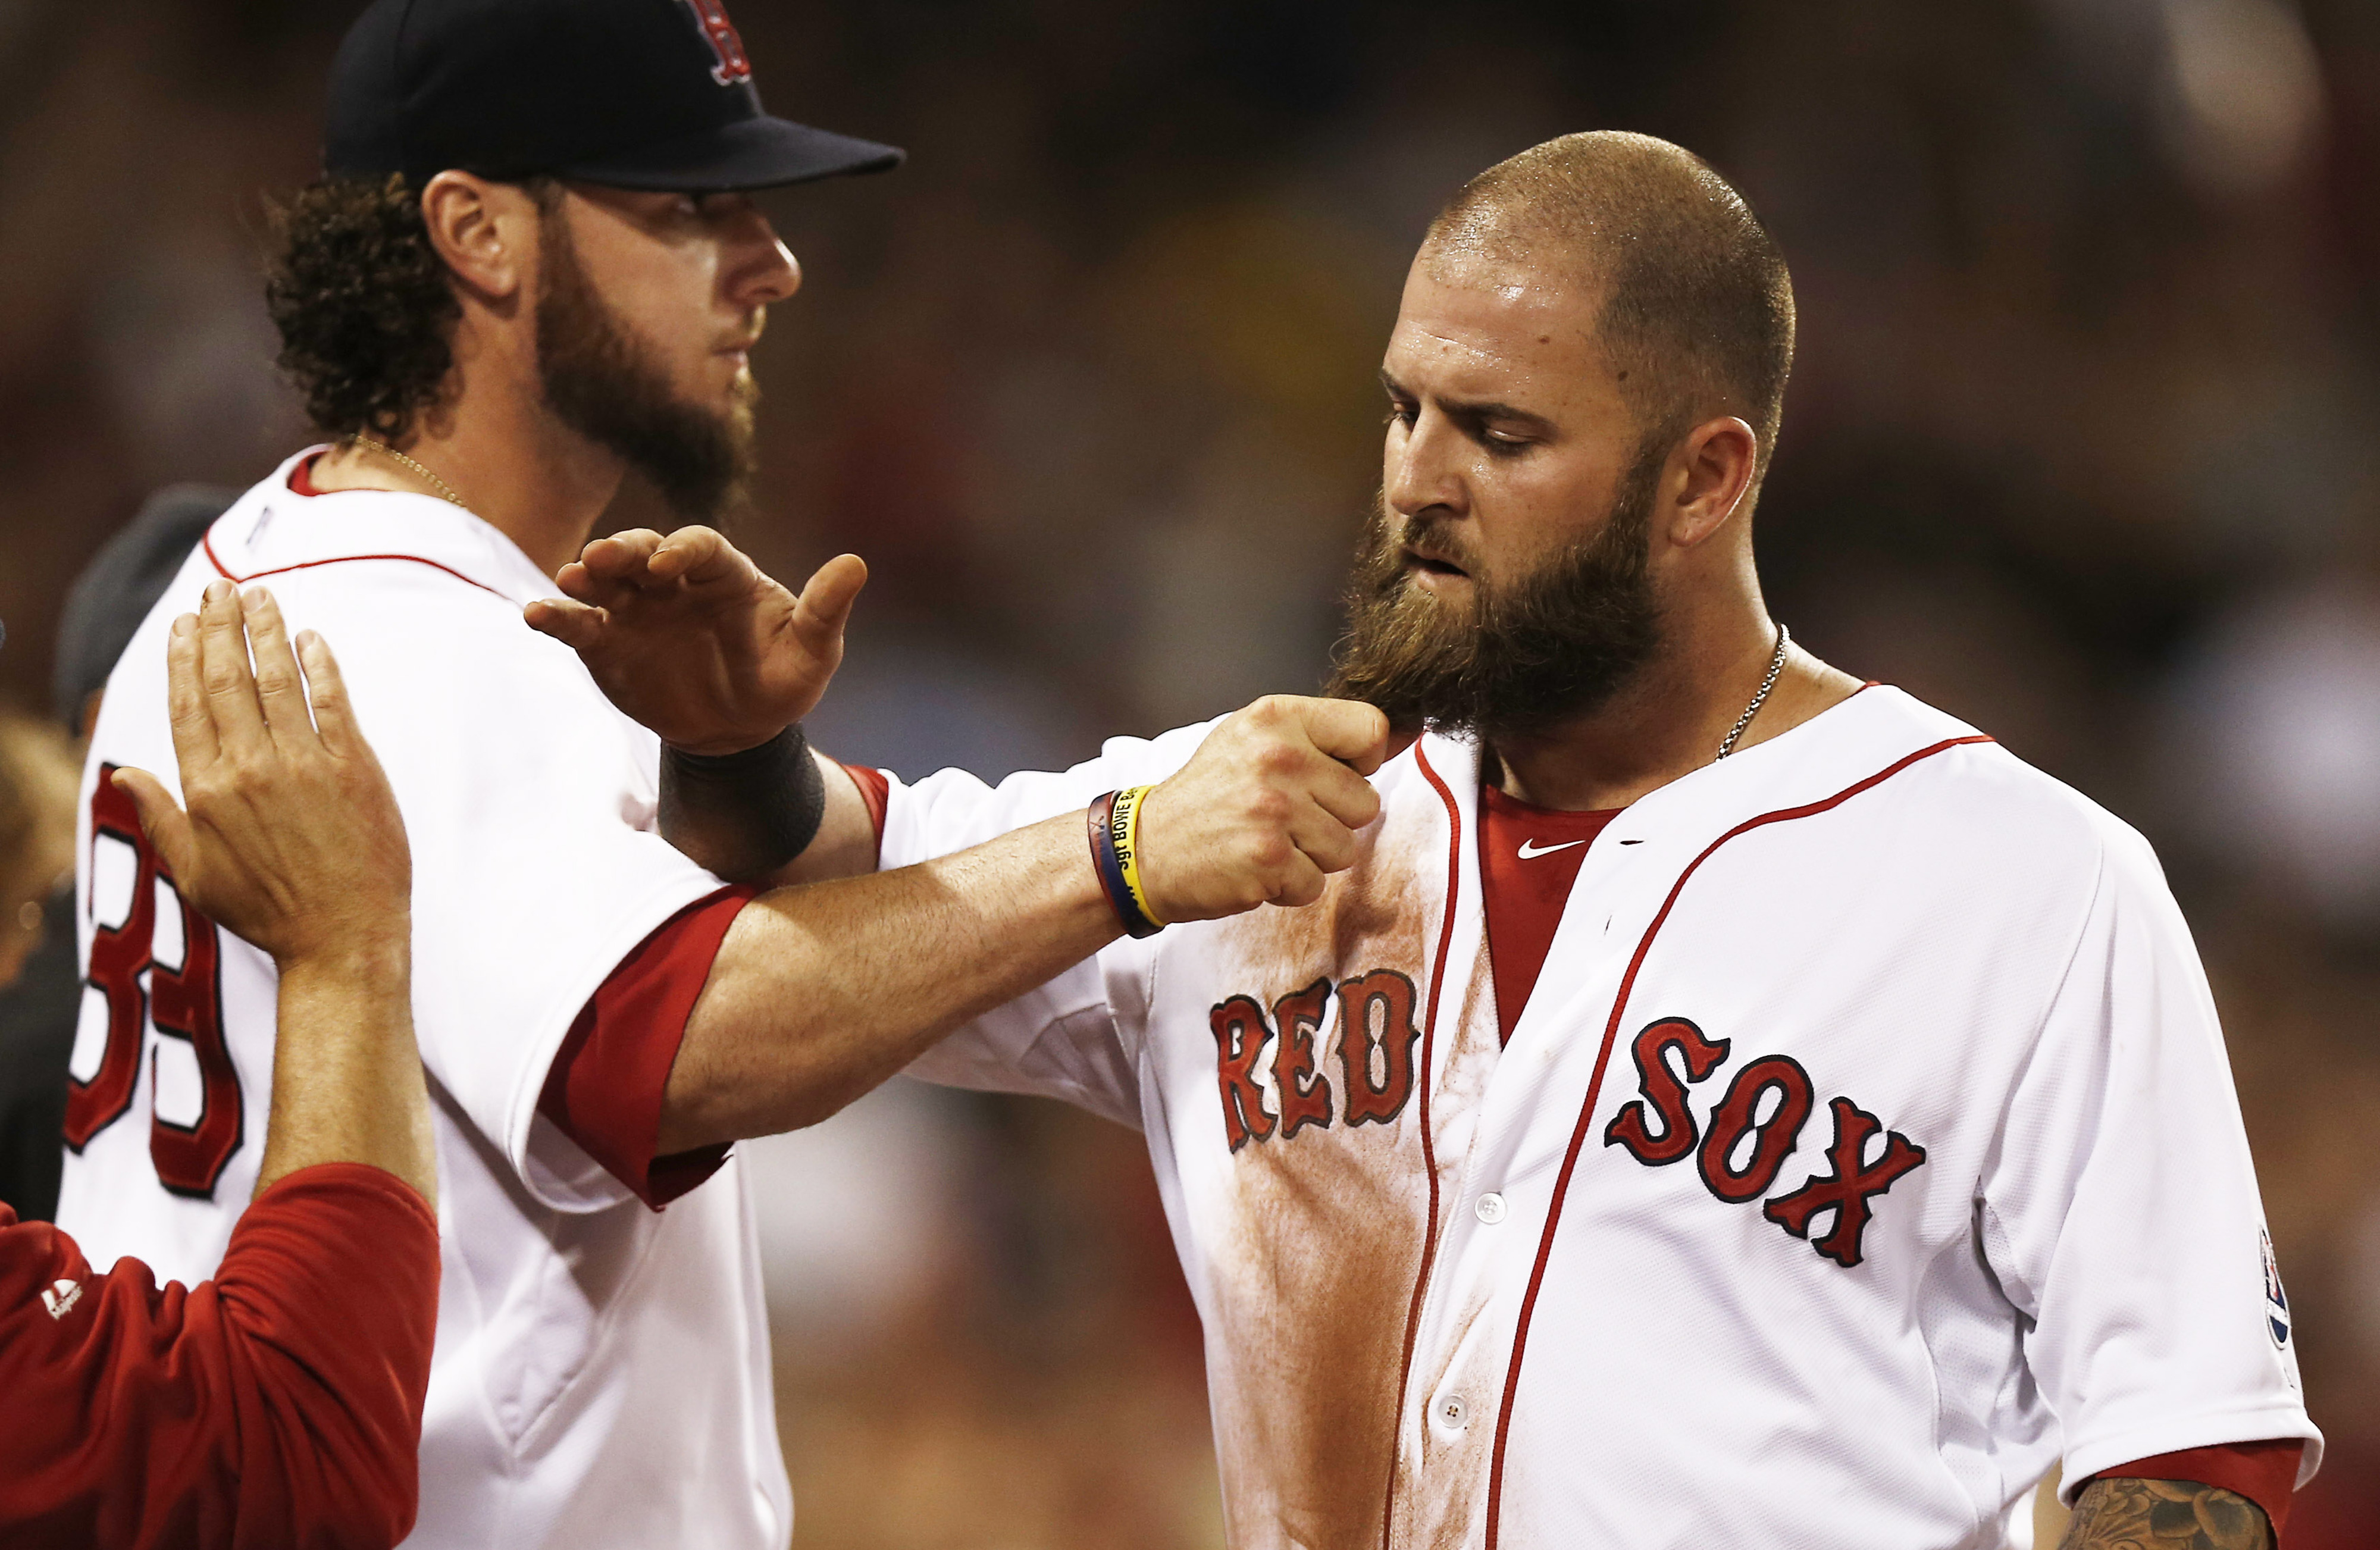 Leave Boston's beards (and the fans) alone!